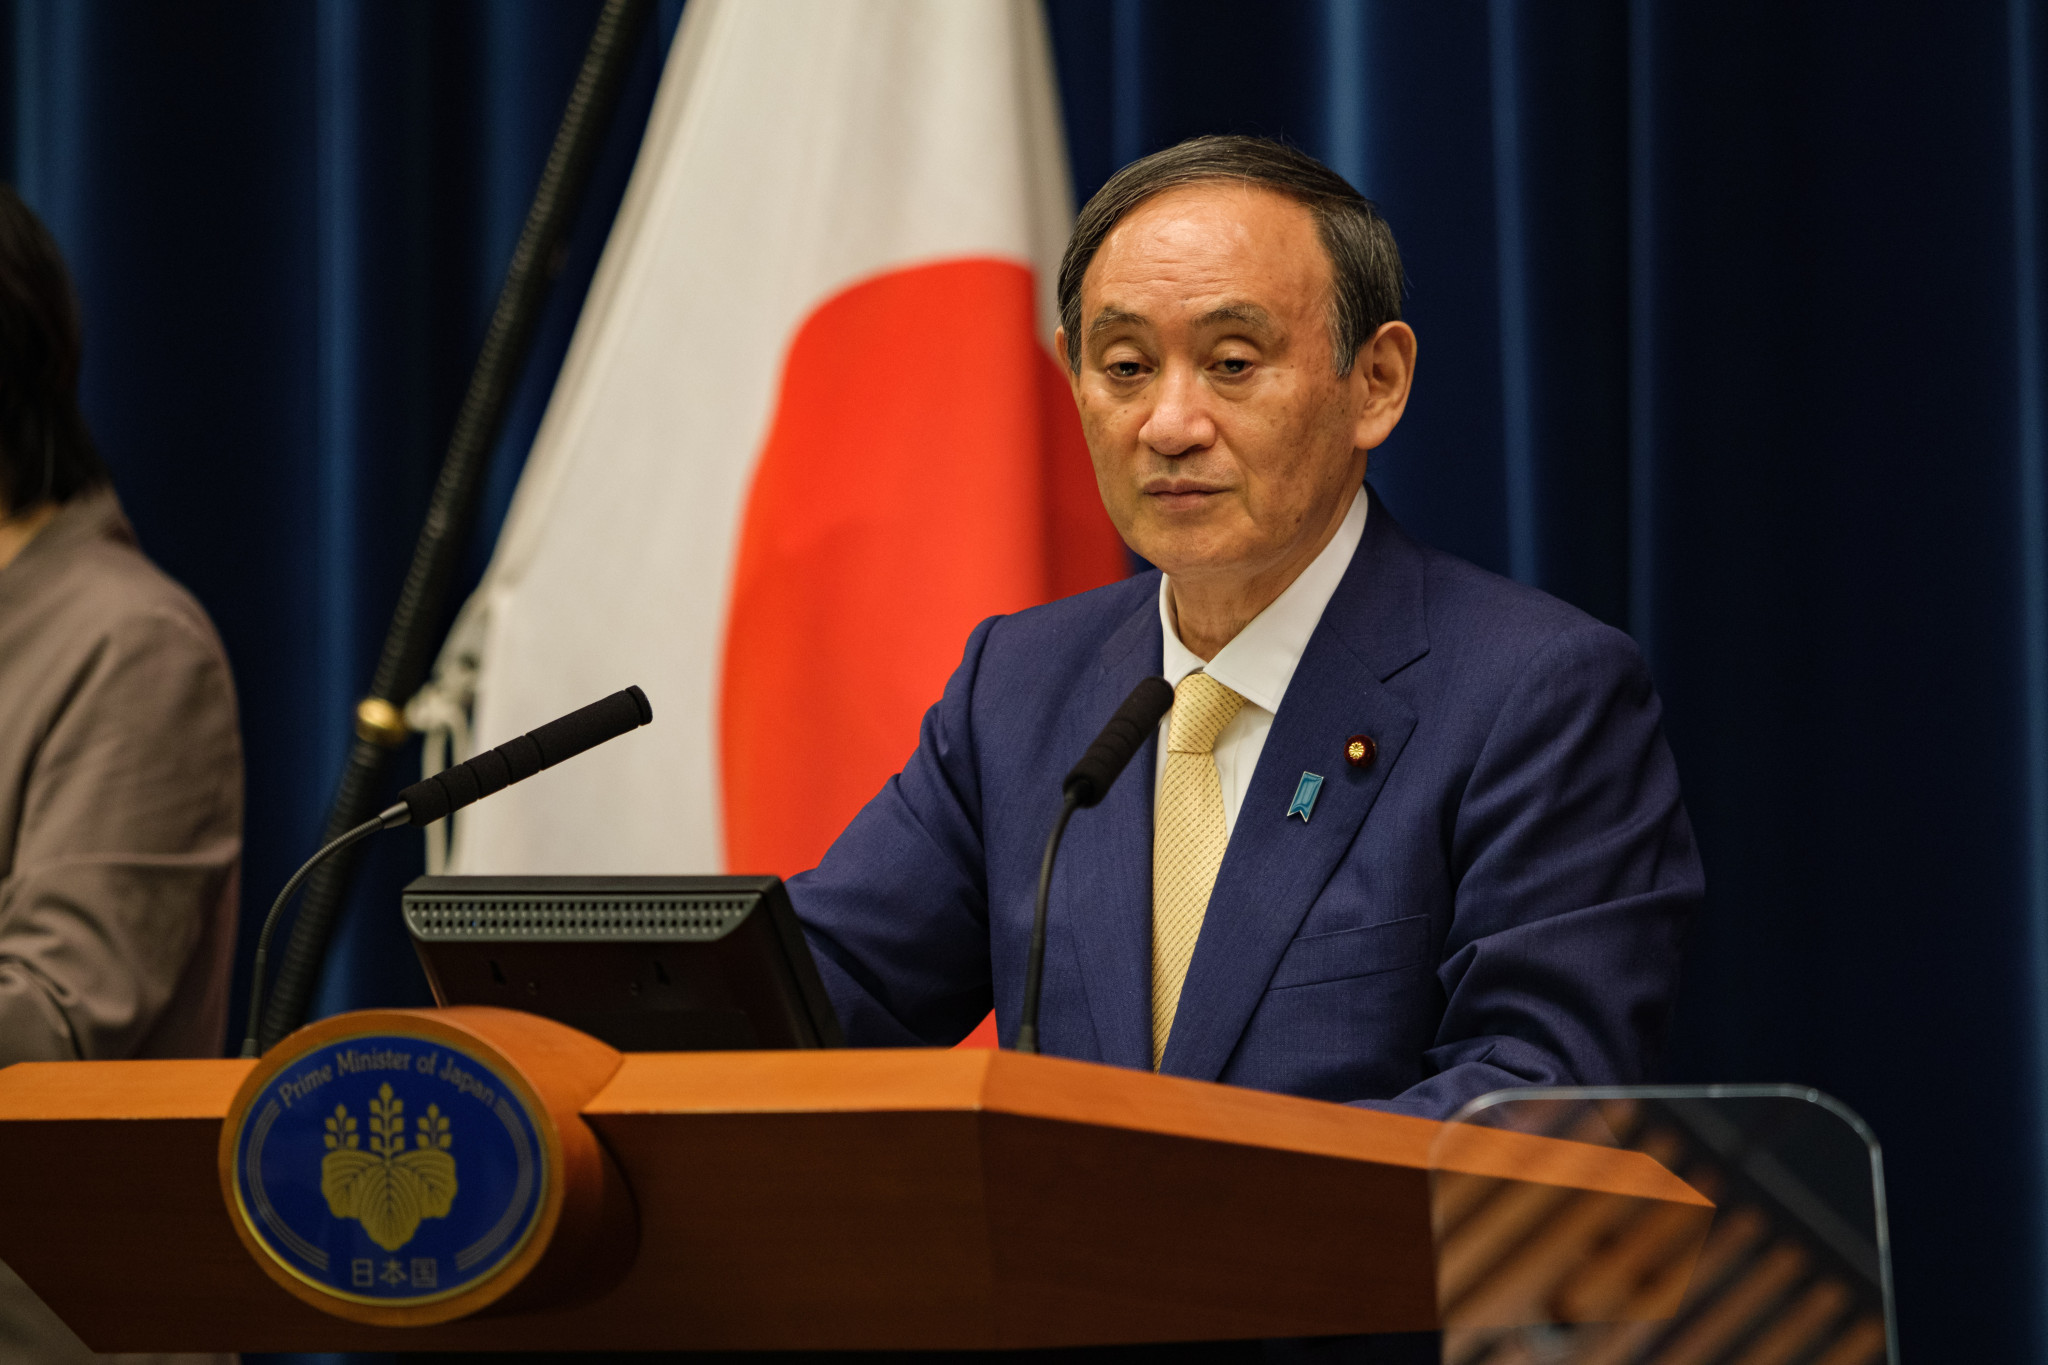 Japanese Prime Minister Yoshihide Suga has claimed that banning spectators from events at Tokyo 2020 will help ensure the Olympic Games take place safely ©Getty Images